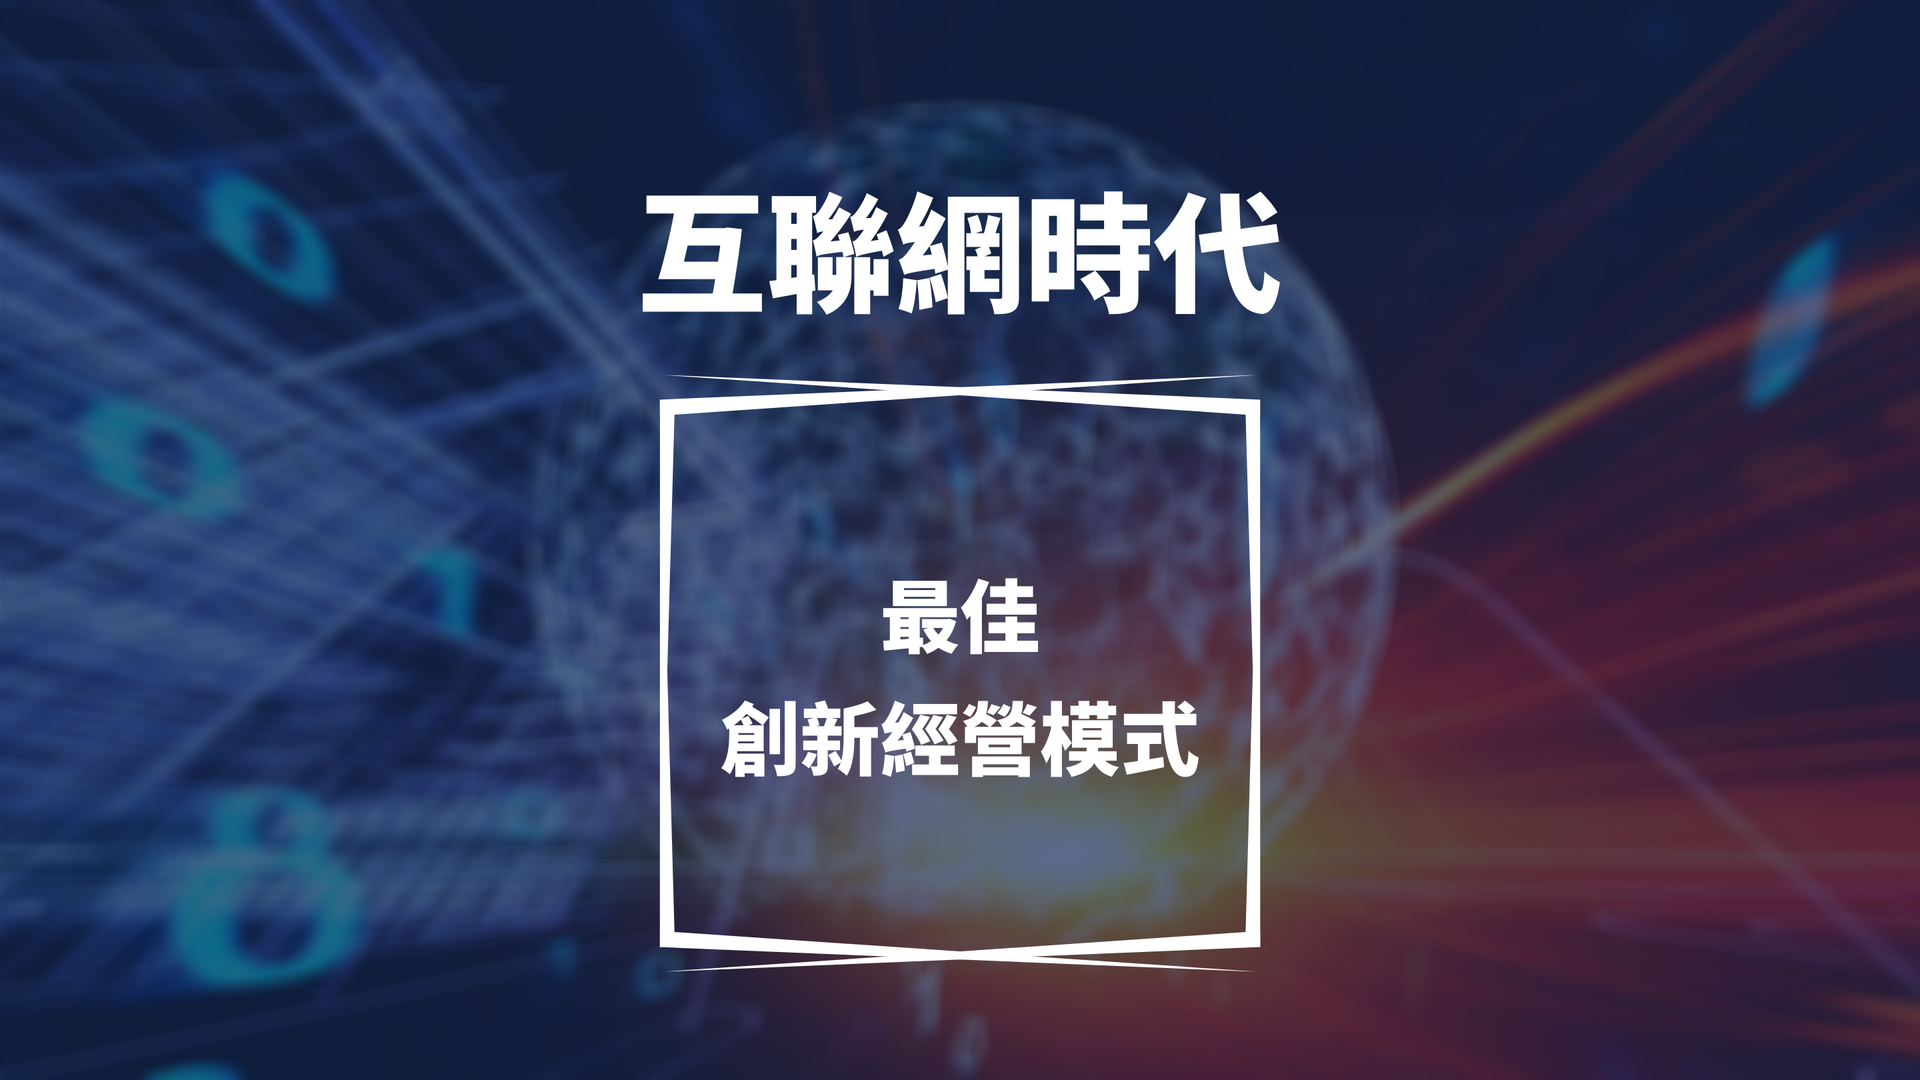 course - 互聯網時代.png